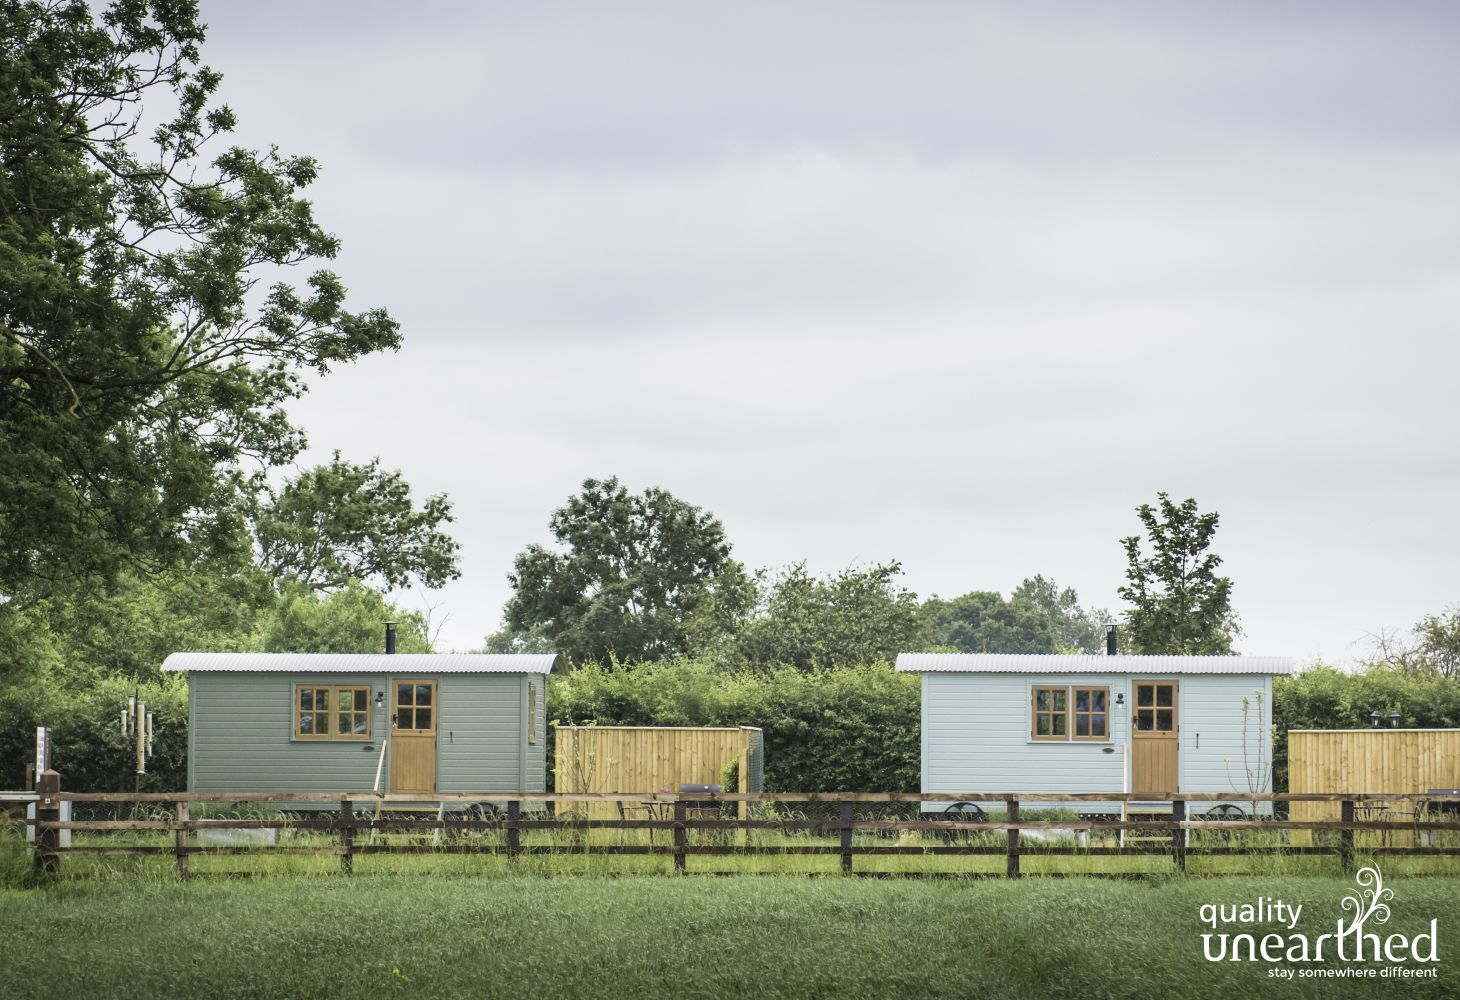 Morndyke Shepherds Huts Fp 87